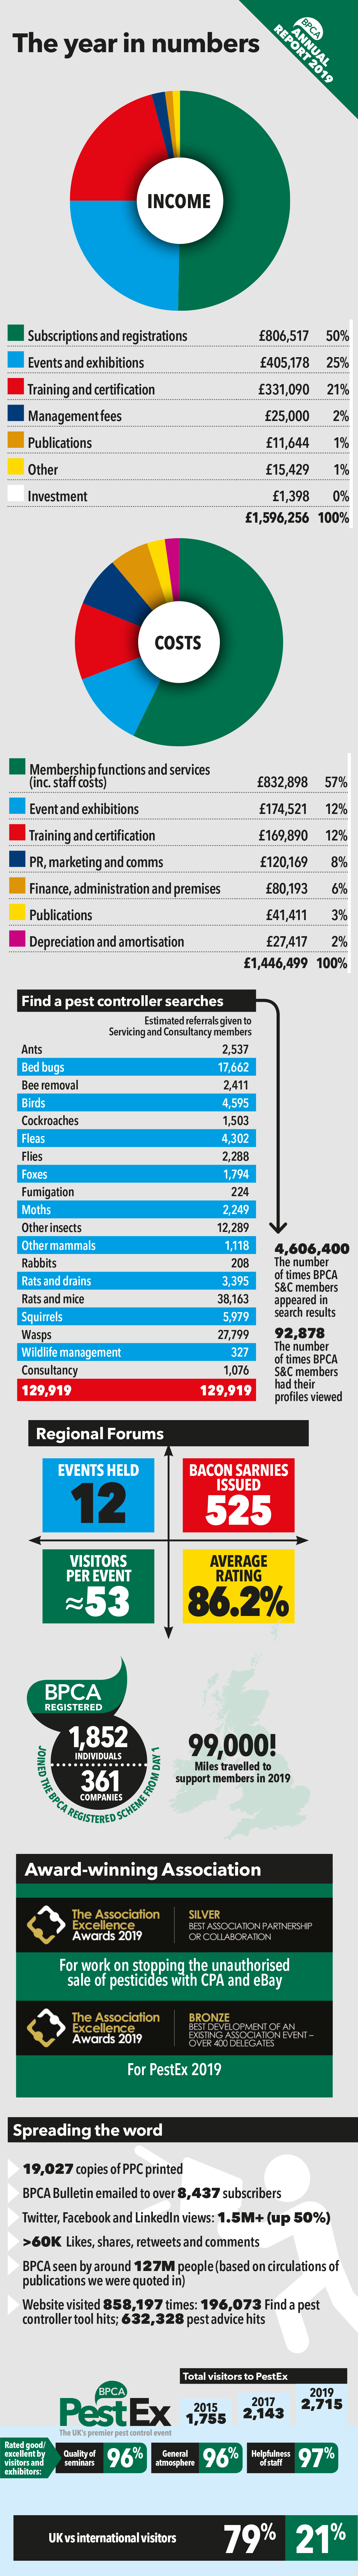 bpca-annual-report-2019-infographic